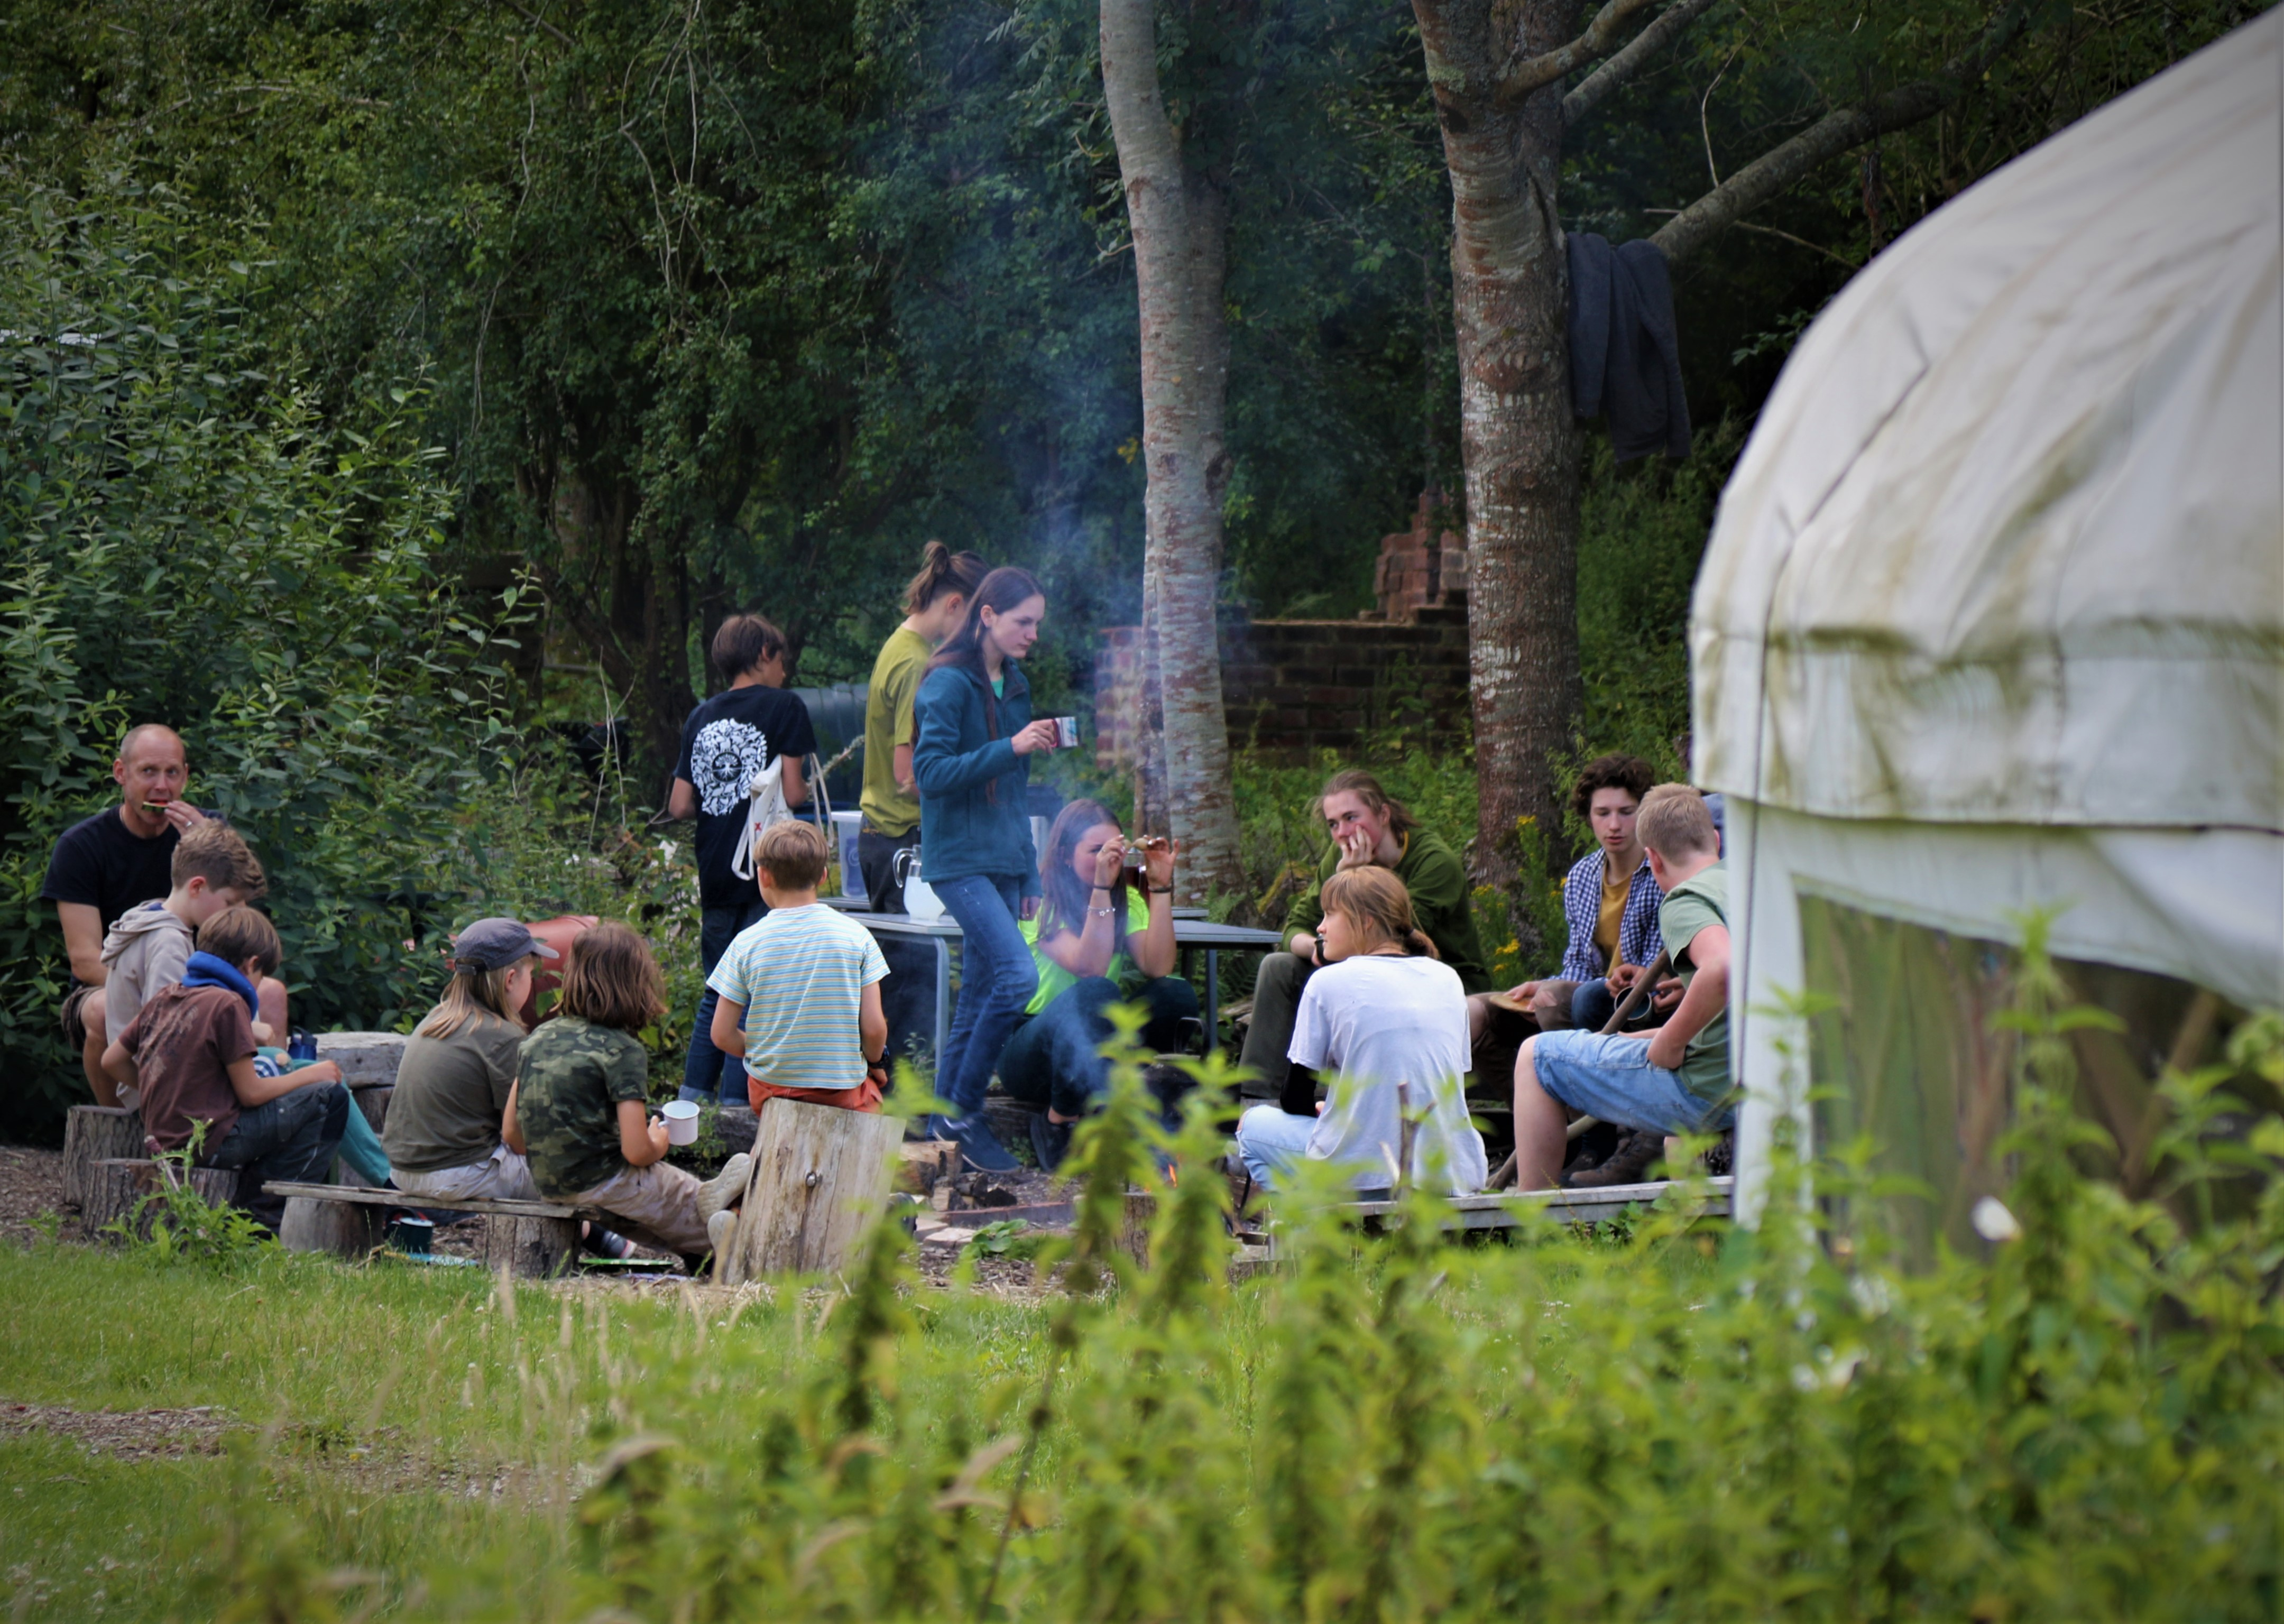 Earth care through the four elements camp mentored by Phil Greenwood